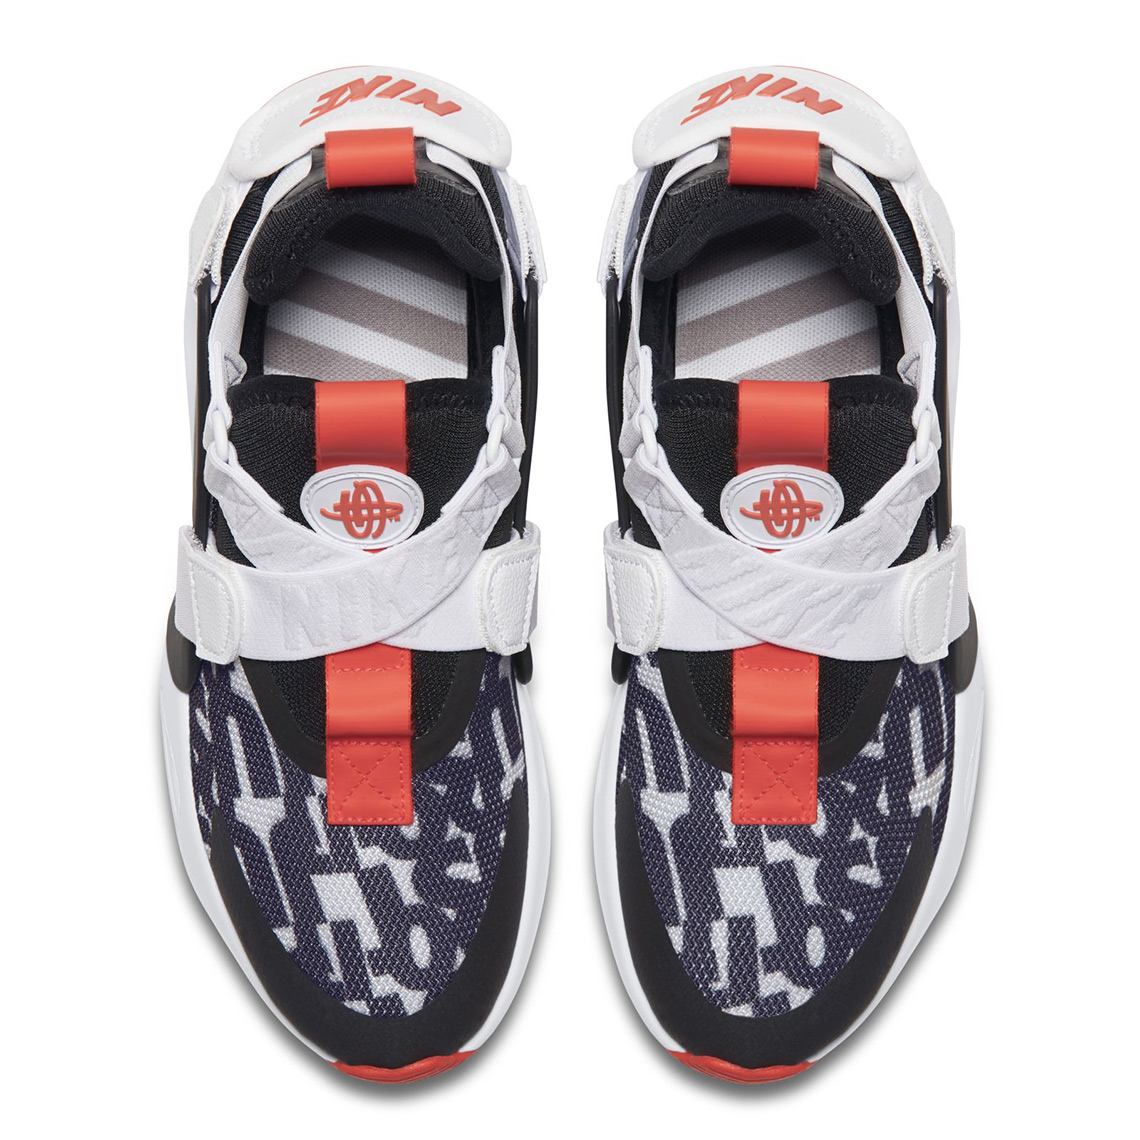 pretty nice 4ab07 97533 Nike Air Huarache Extreme Release Date  August 2nd, 2018. Color  WHITE BRIGHT  CRIMSON-BLACK-WOLF GREY. Photos  us11